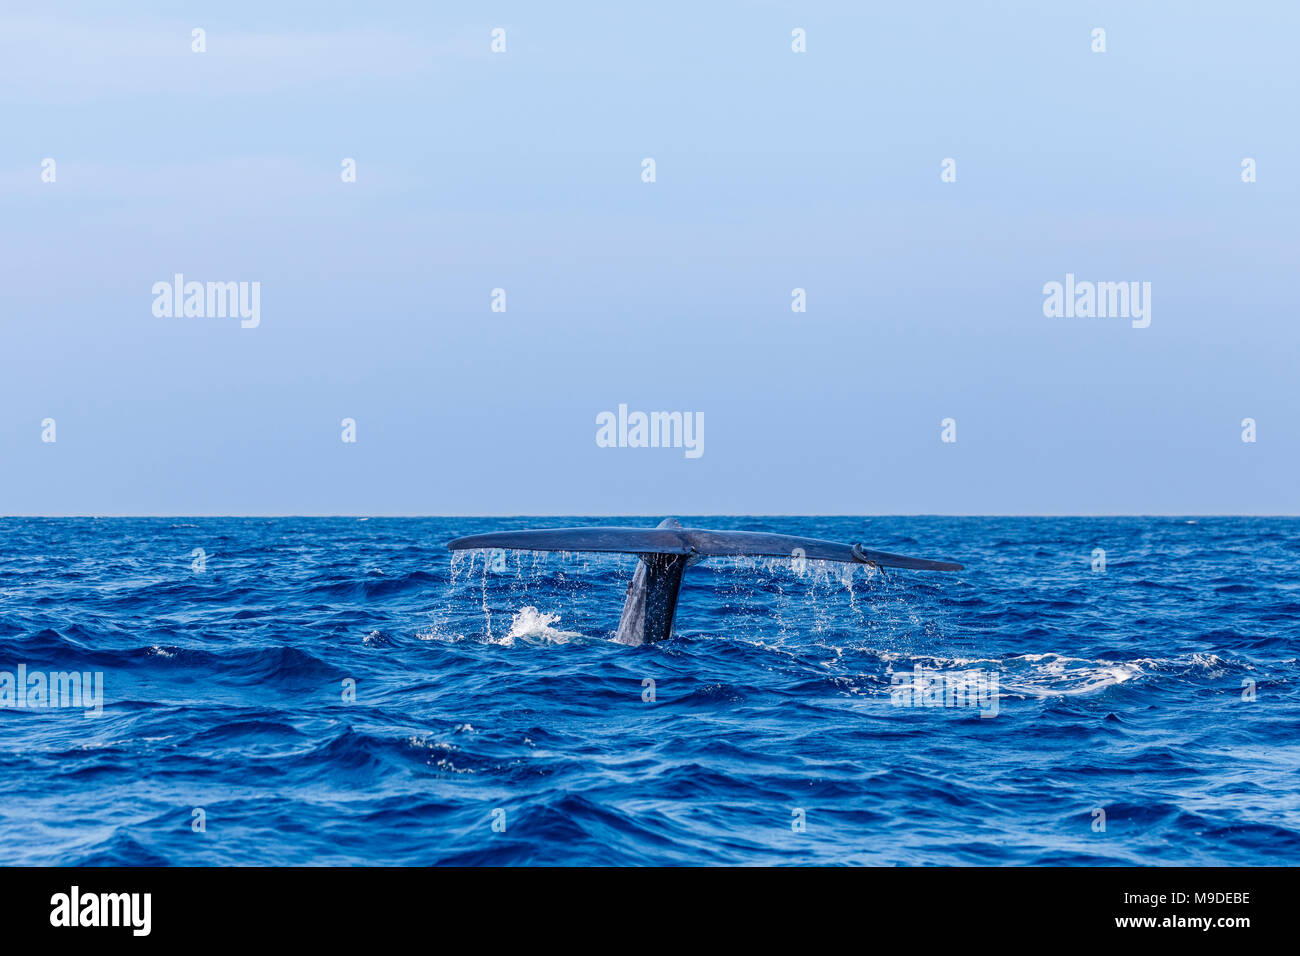 Blue whale (Balaenoptera musculus) tail fluke with suckerfish seen while whale watching at Weligama, Mirissa, Laccadive Sea, south coast of Sri Lanka - Stock Image